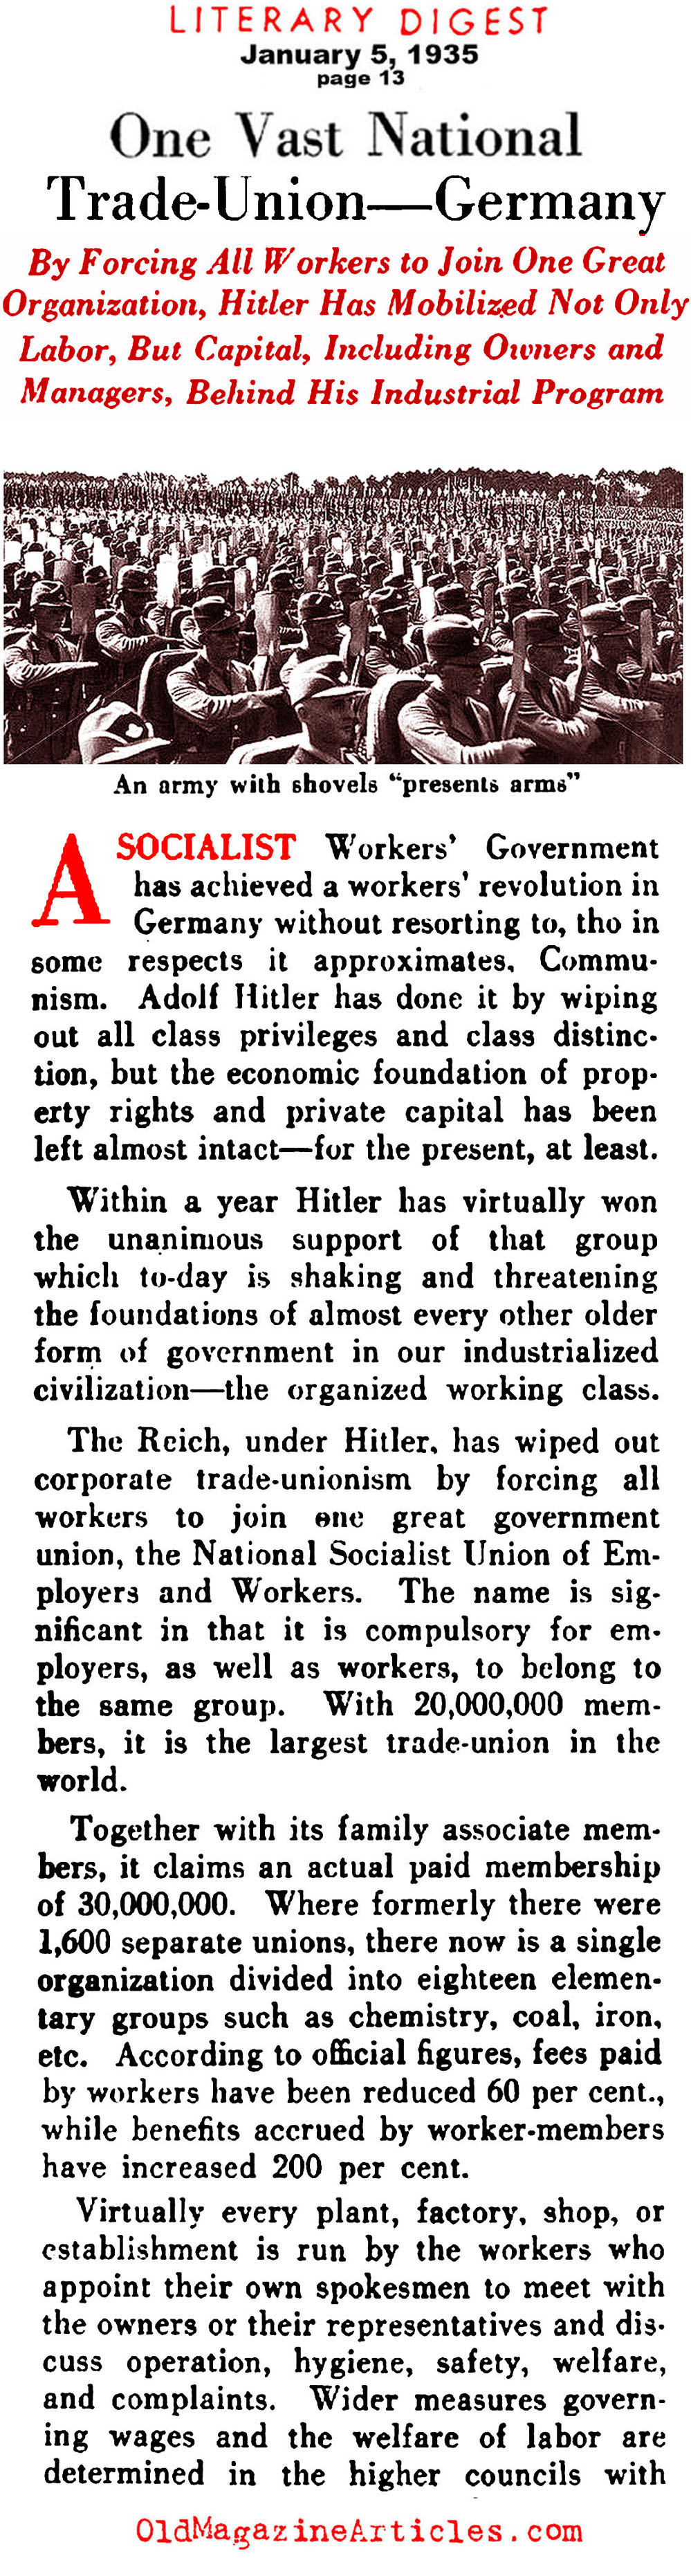 A Socialist Remedy for Nazi-Germany's Labor Questions (Literary Digest, 1935)